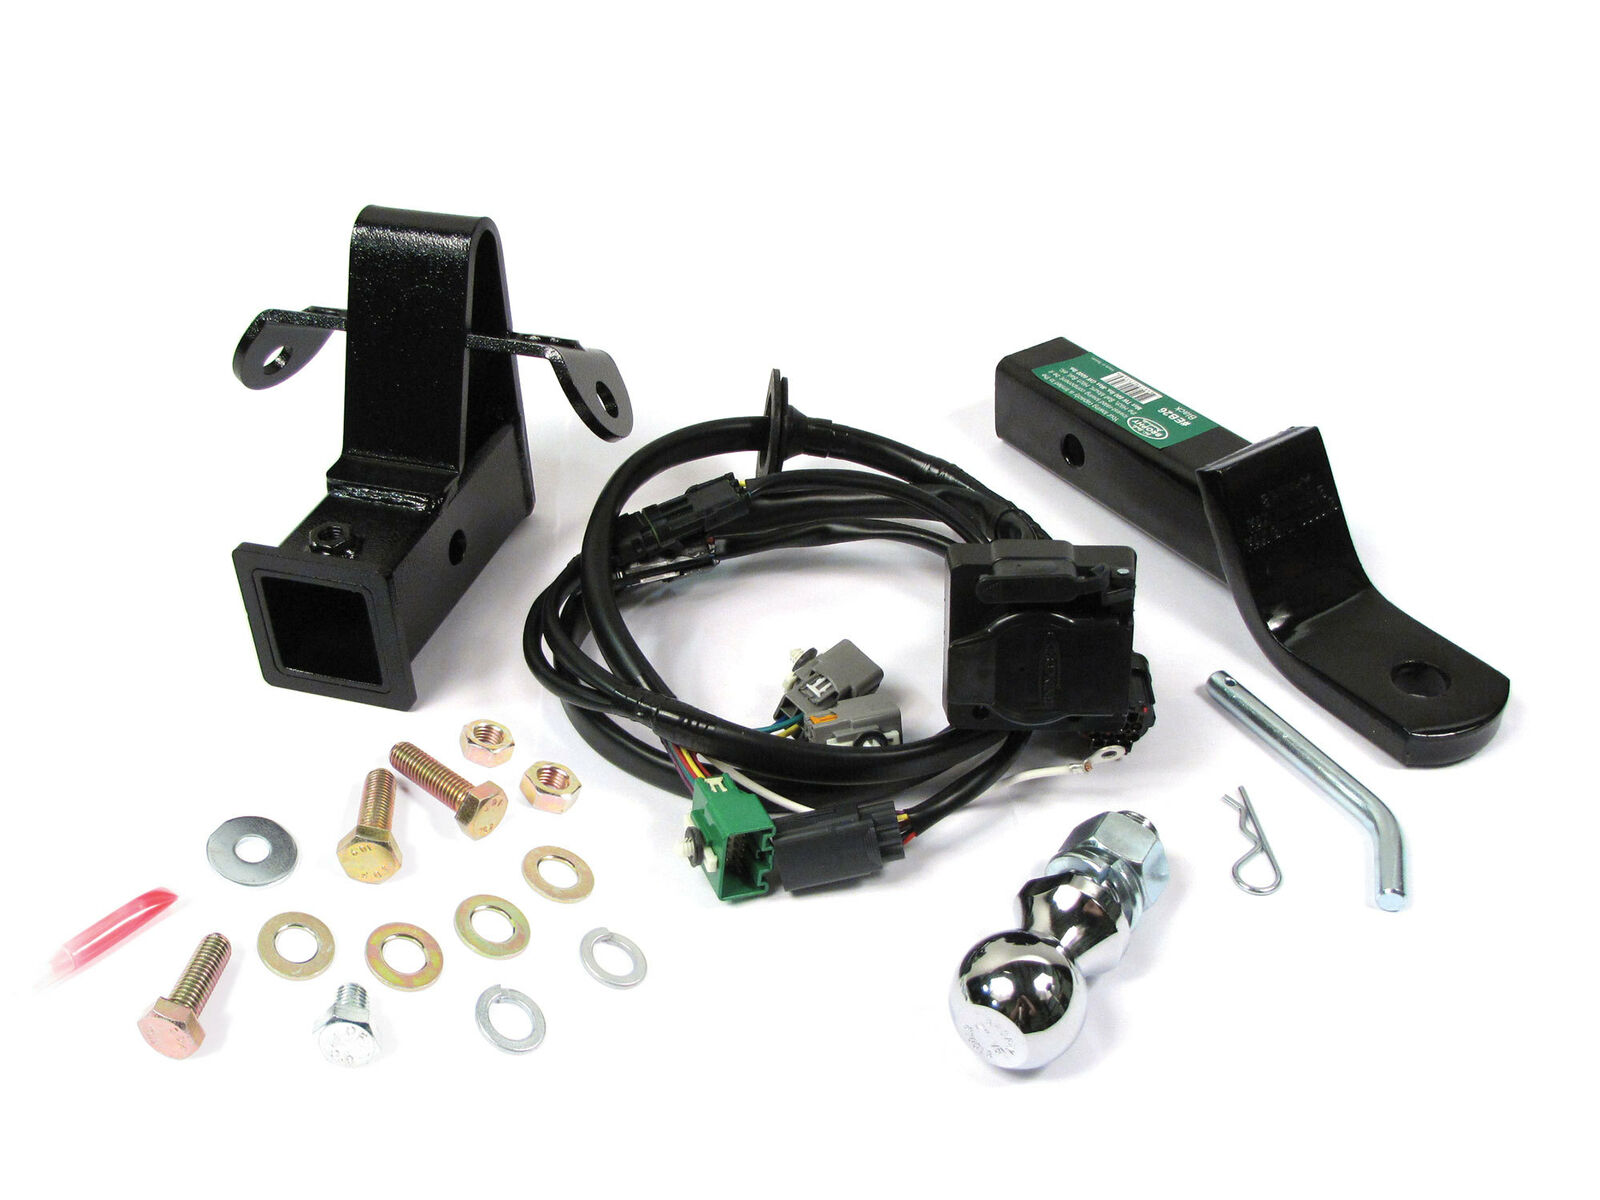 Range Rover Trailer Wiring Harness Library Tow Hitch And Kit For Land Sport 1 Of 1free Shipping